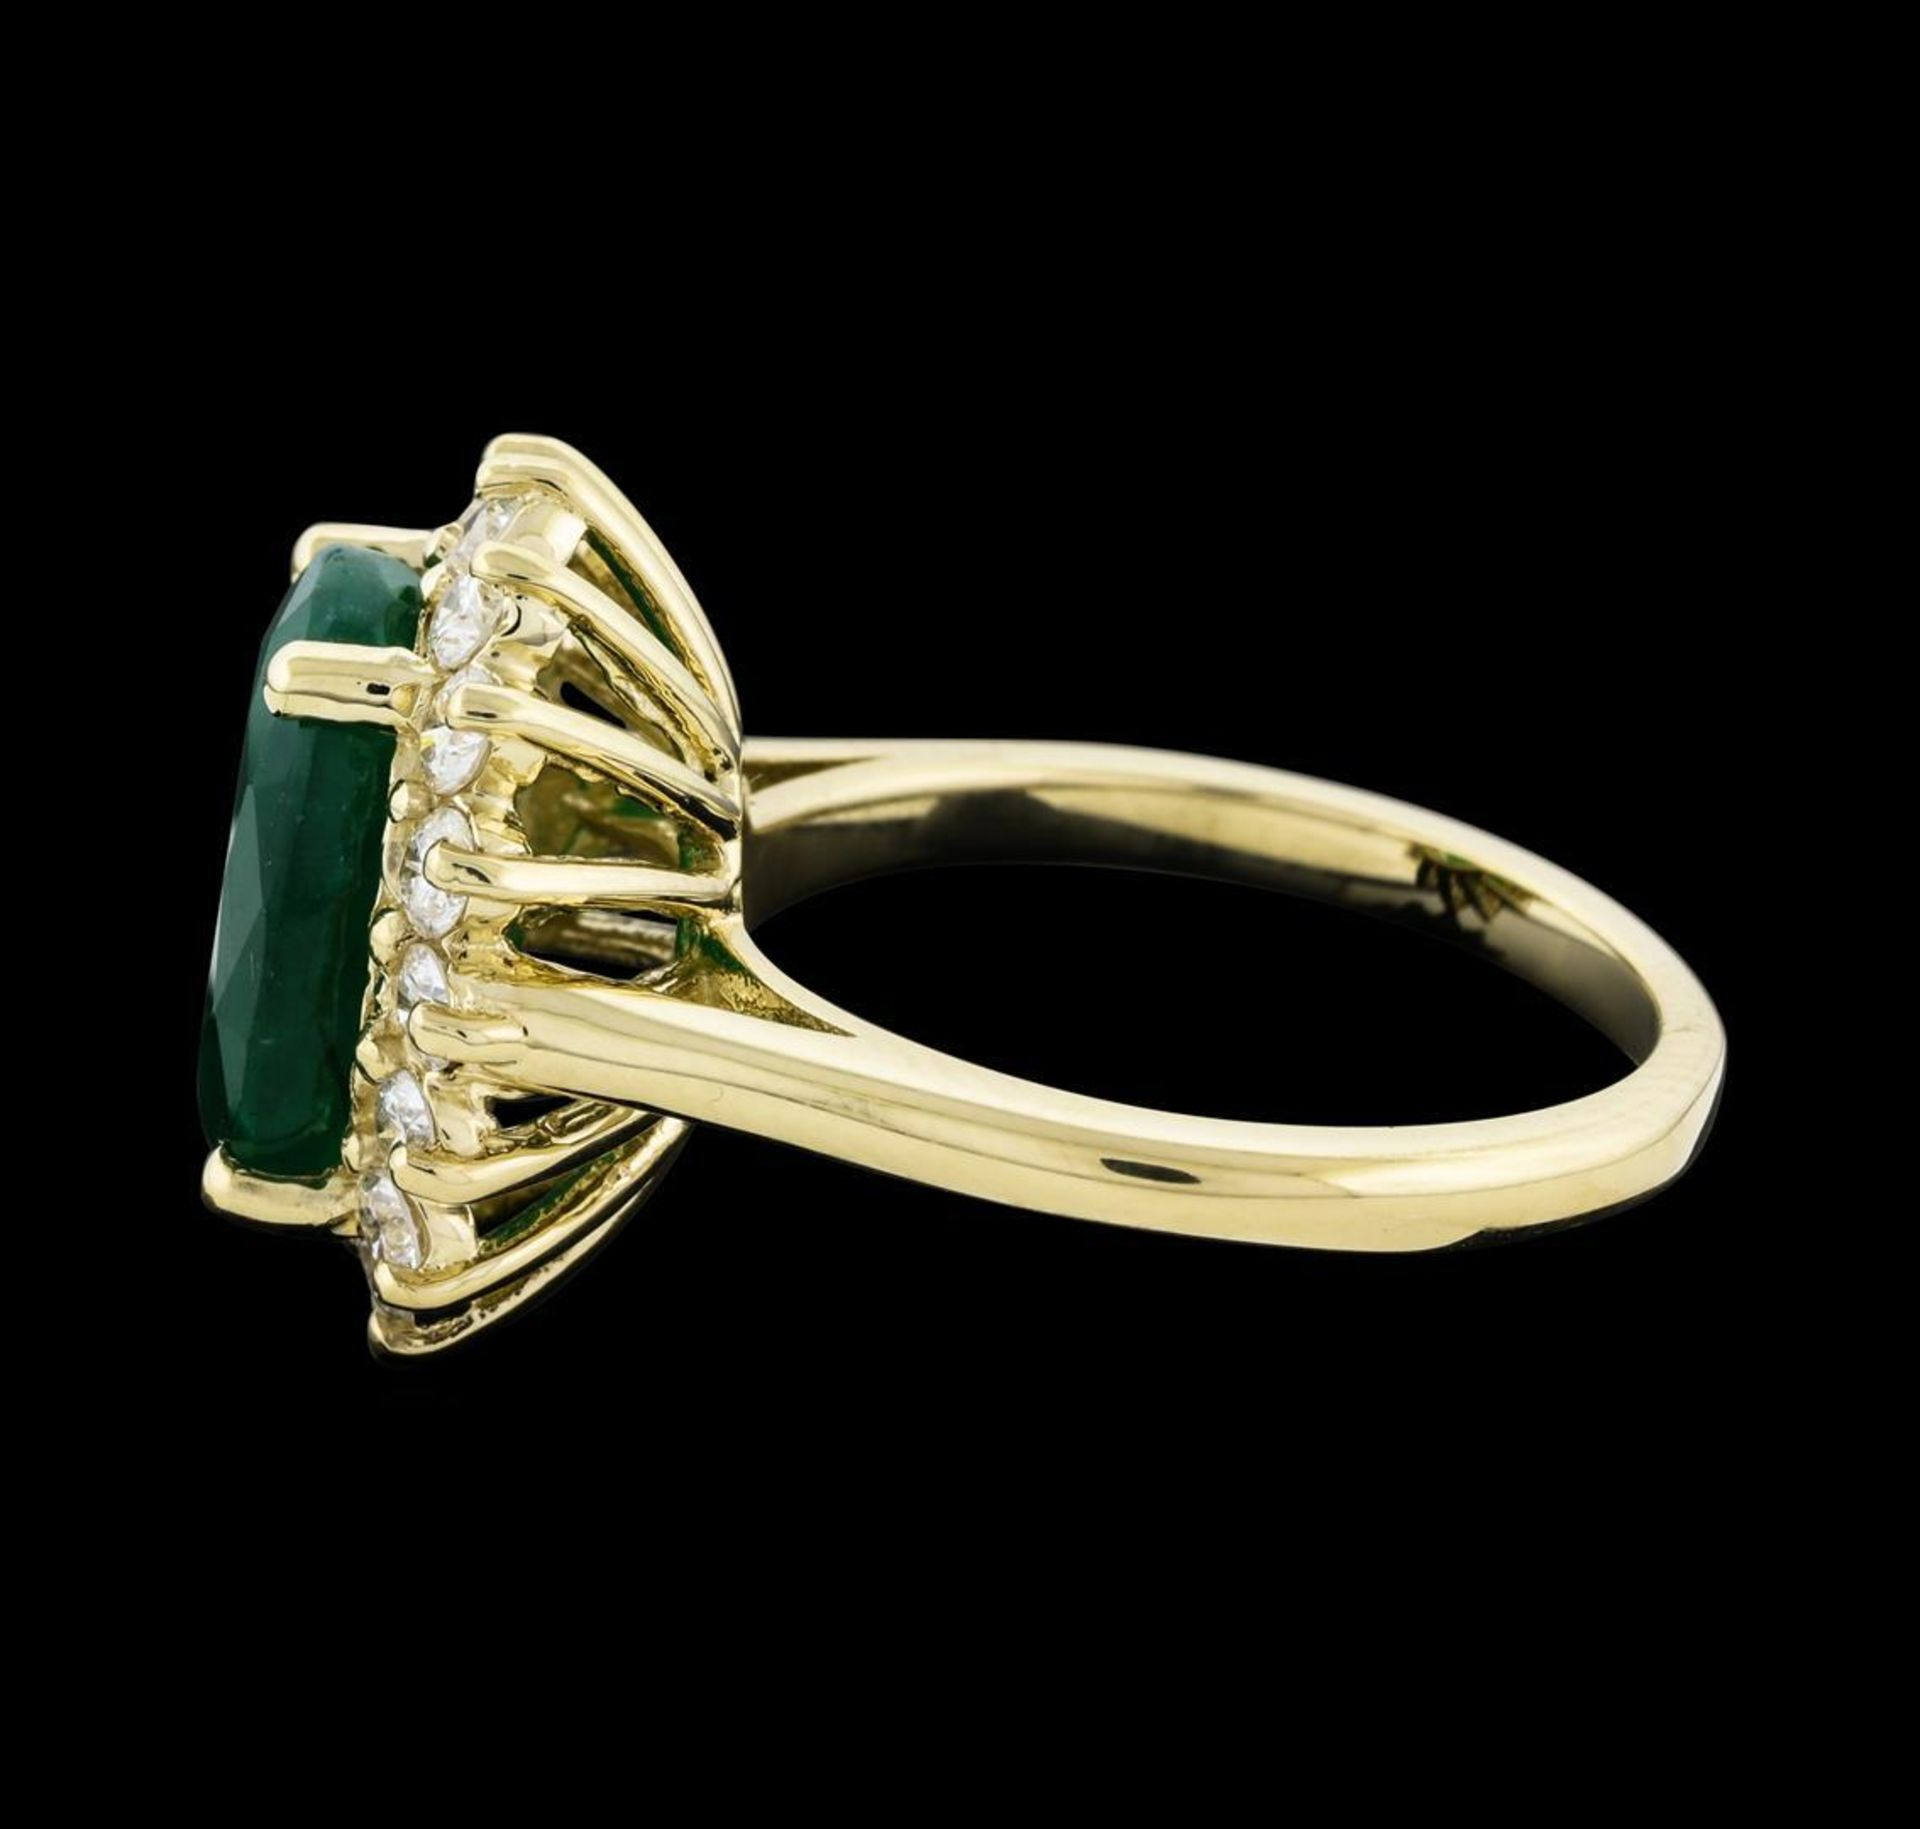 4.52 ctw Emerald and Diamond Ring - 14KT Yellow Gold - Image 3 of 5